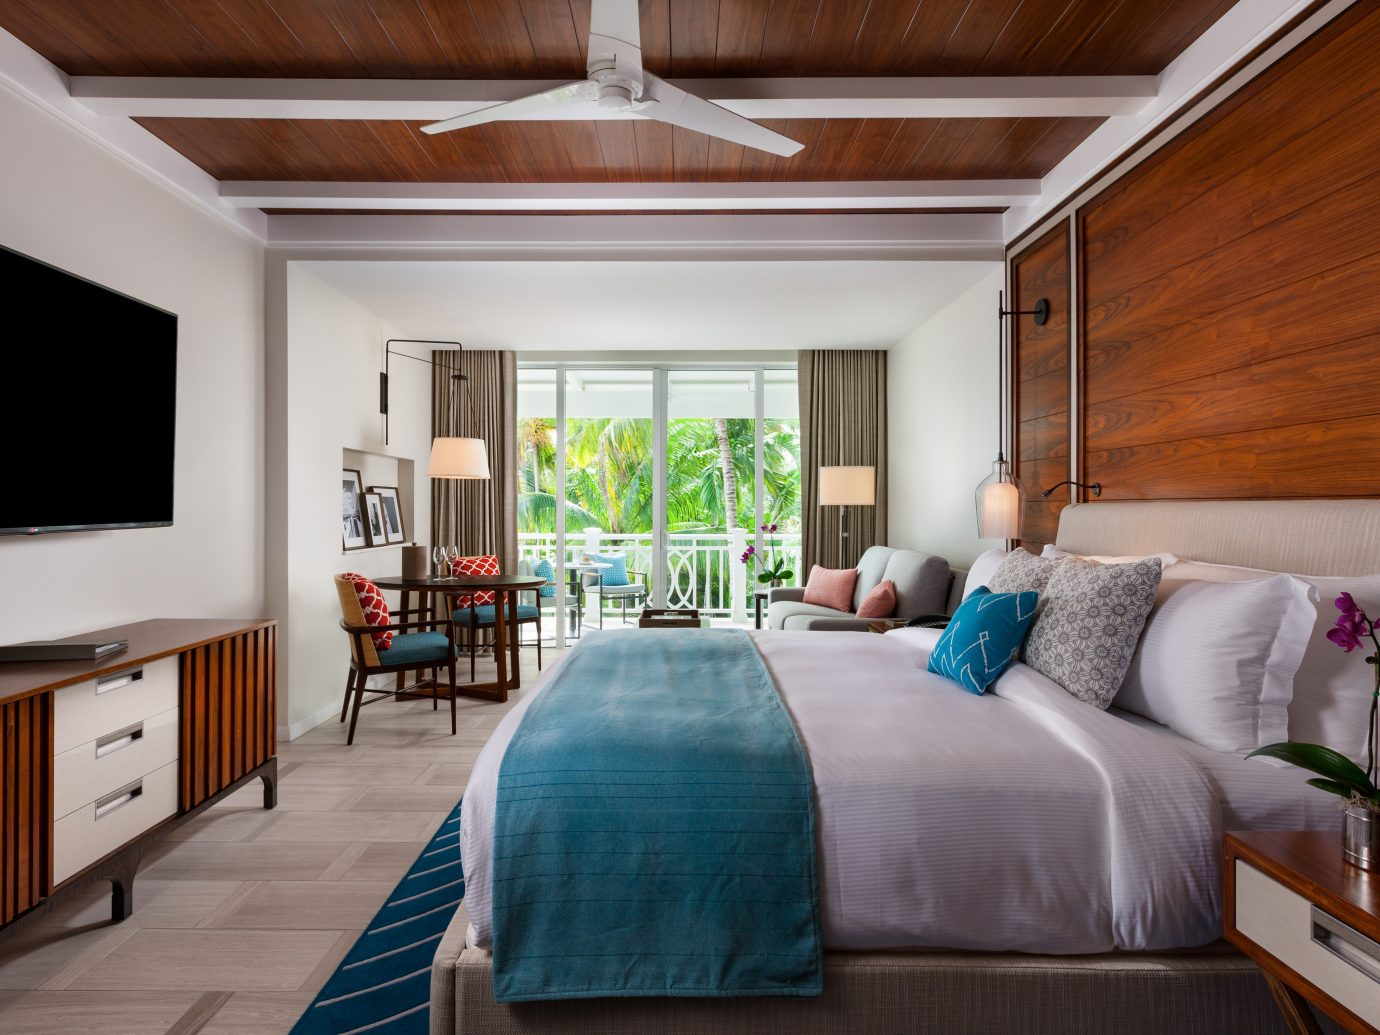 Bedroom at Four Seasons Ocean Club Bahamas